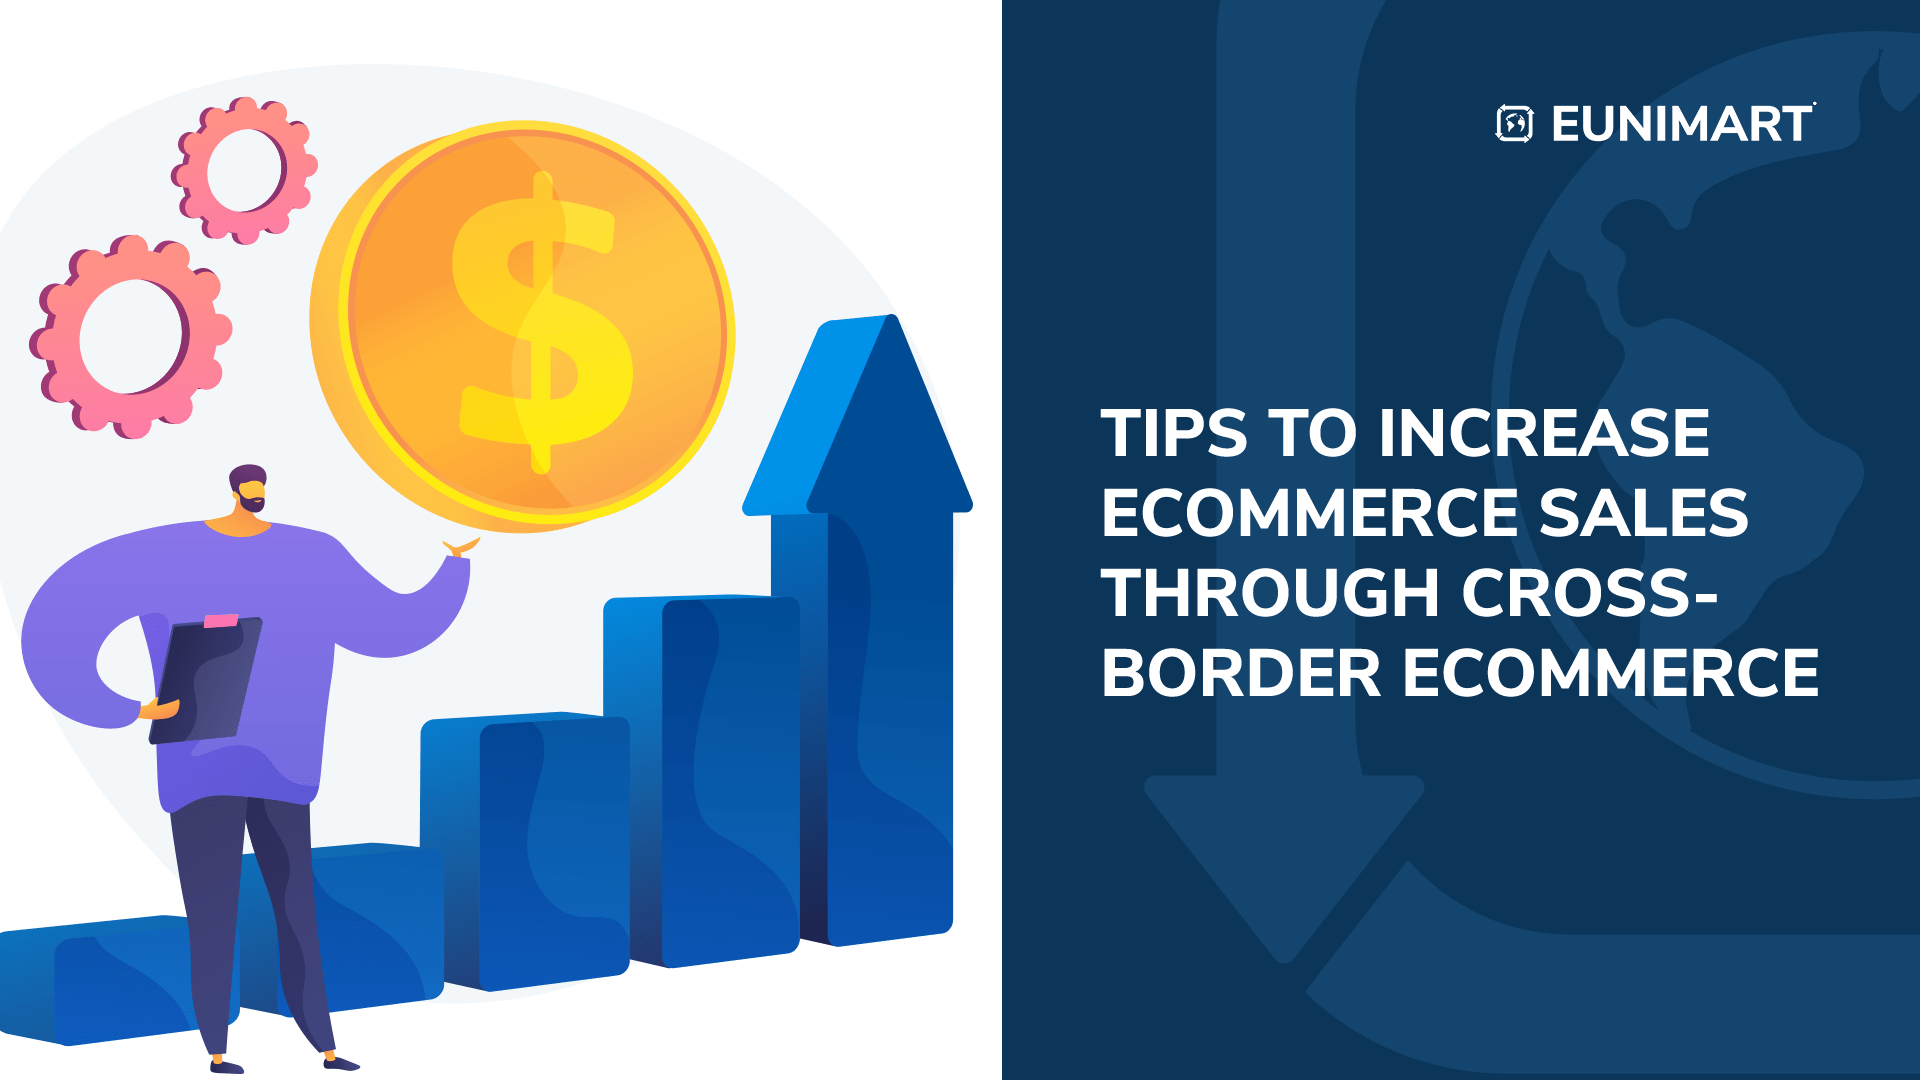 Tips to Increase E-commerce Sales through Cross-border Ecommerce